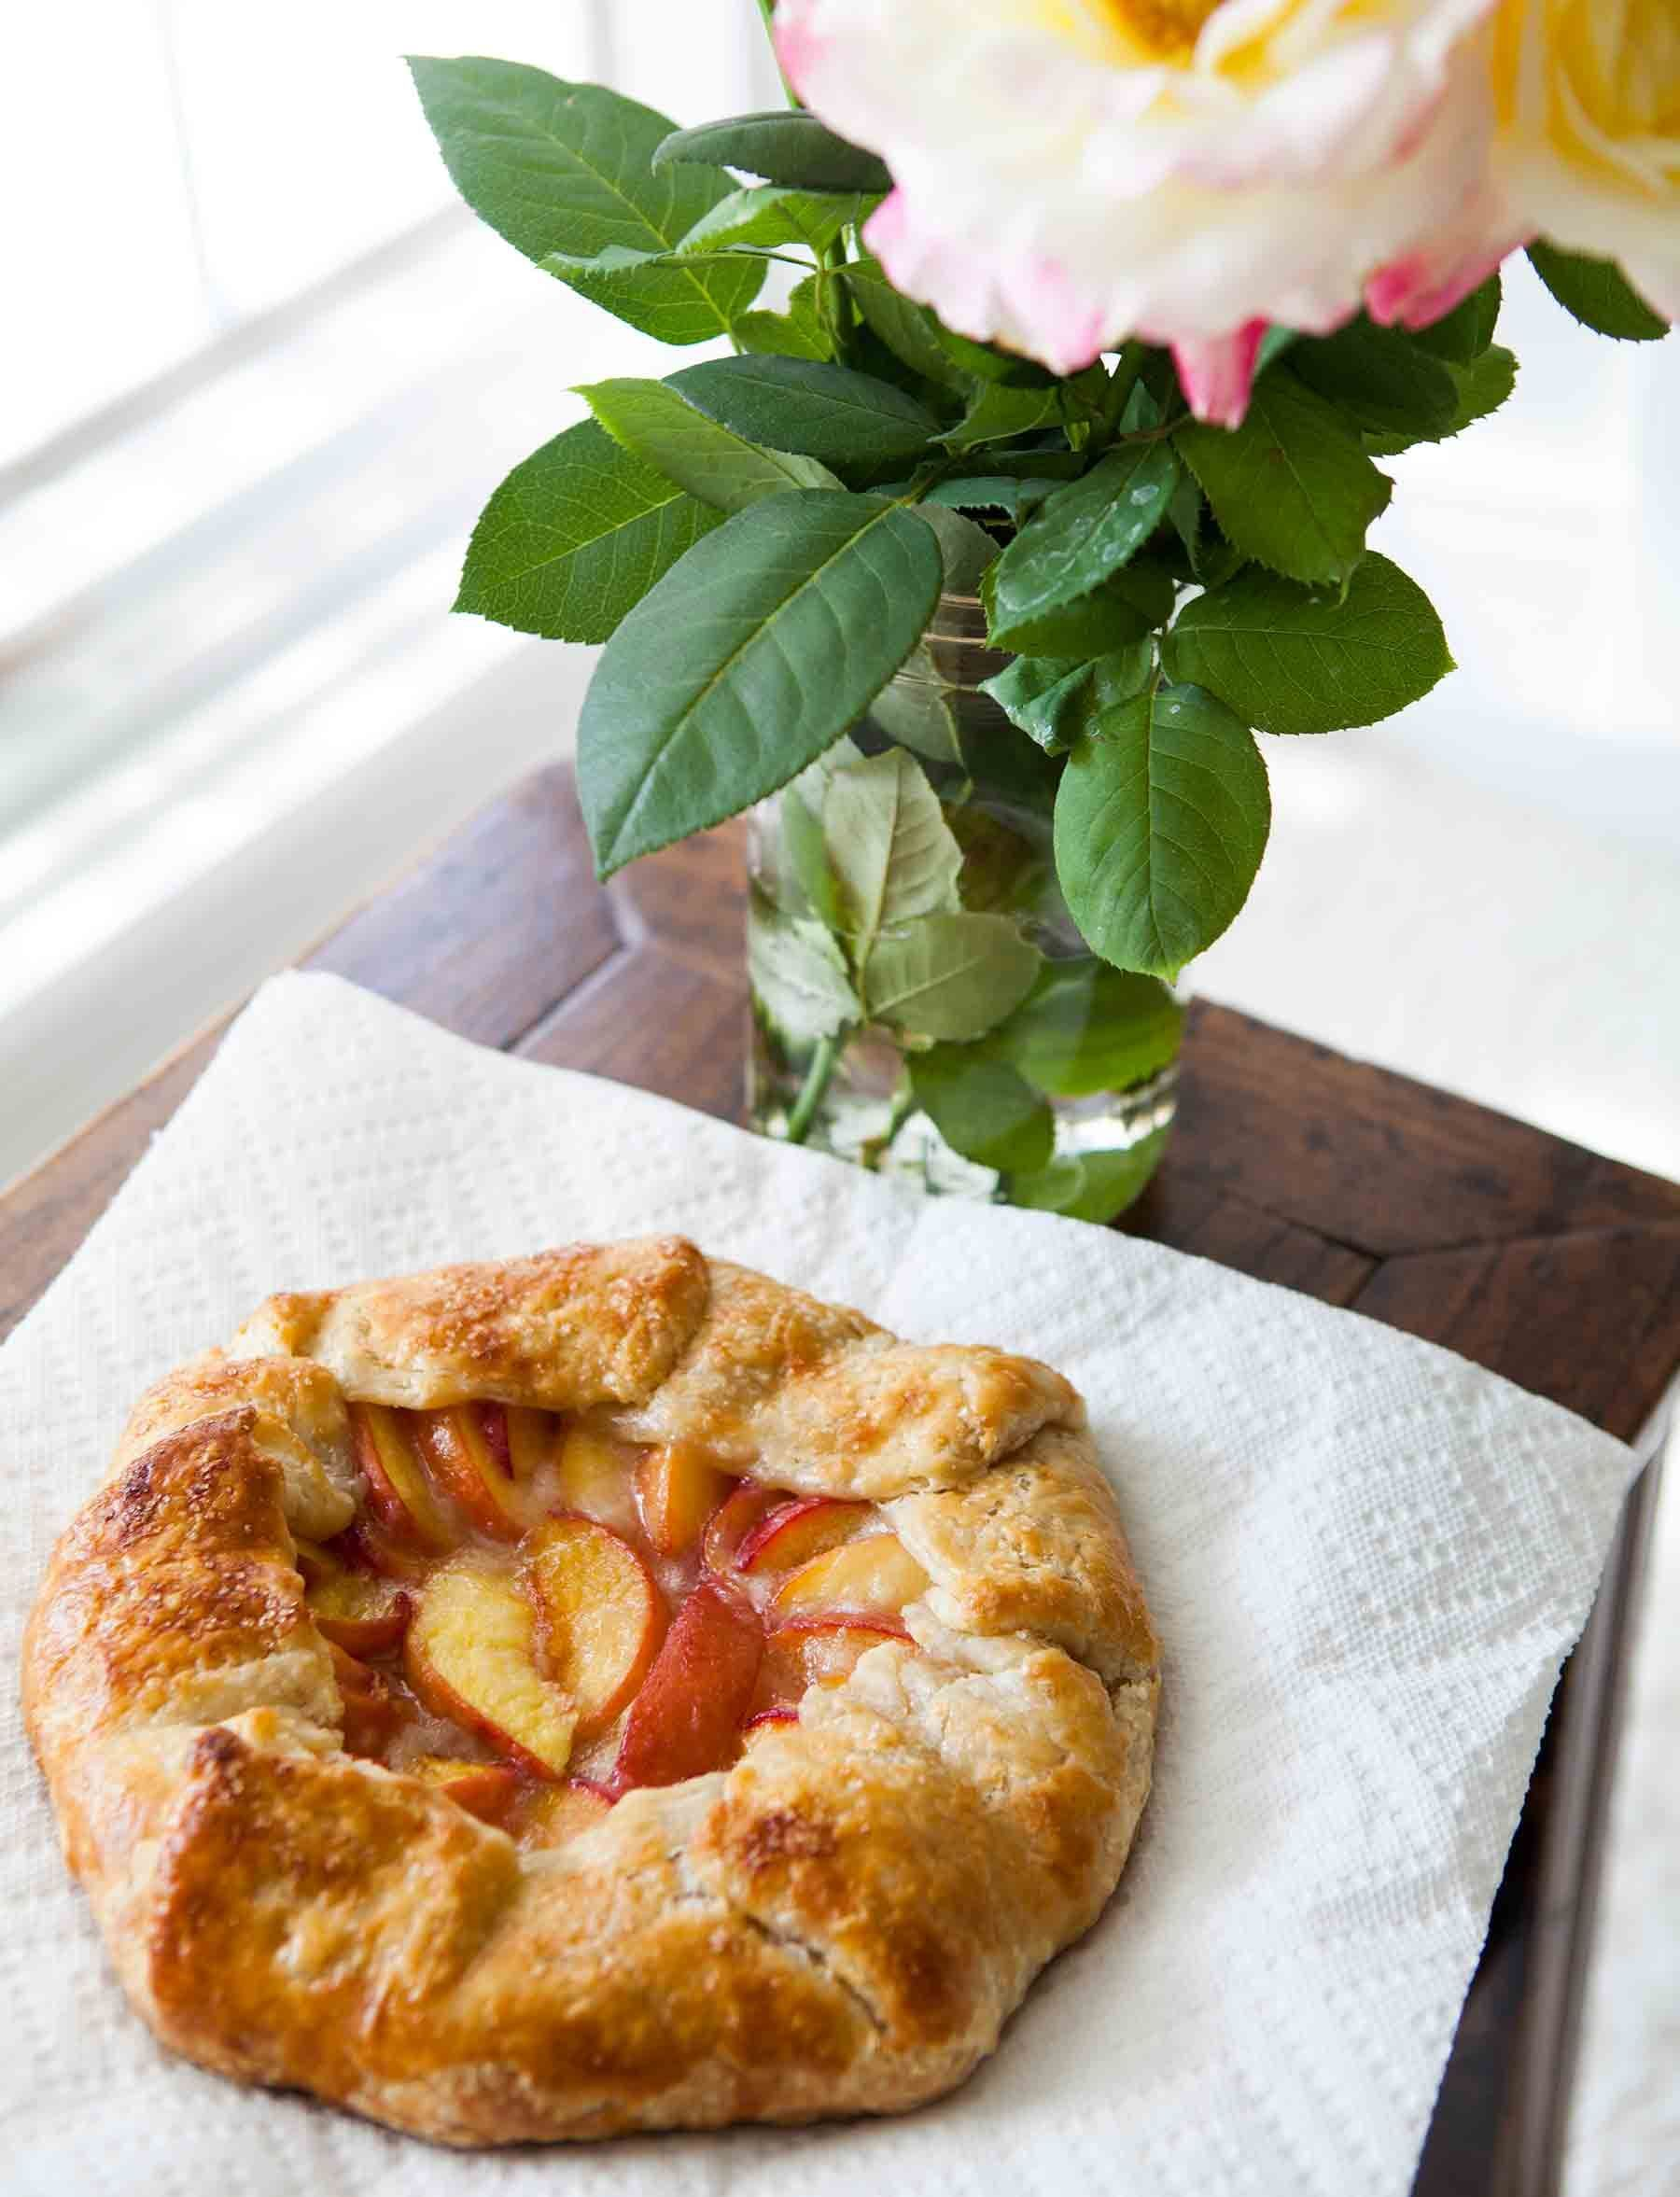 Beautiful Peach Galette! Rustic tart made with slices of fresh yellow peaches in a simple butter crust. So easy to make this free-form tart! On Peach Galette! Rustic tart made with slices of fresh yellow peaches in a simple butter crust. So easy to make this free-form tart! On